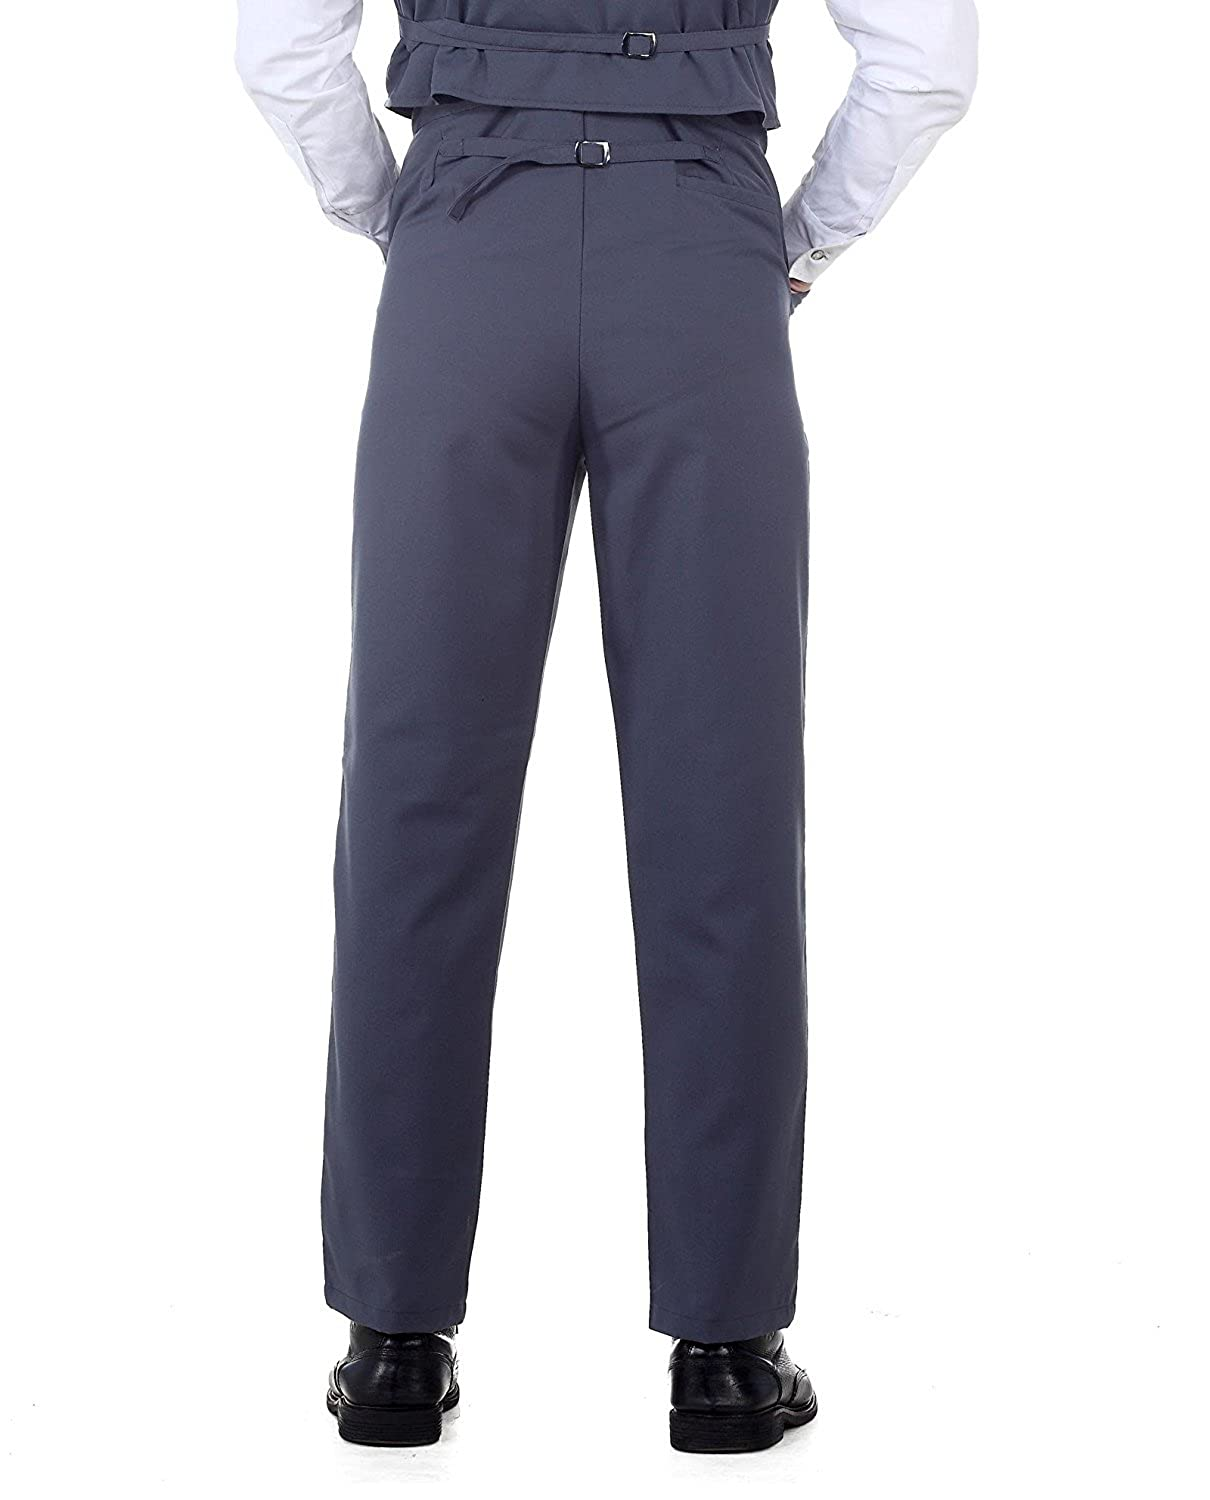 1920s Men's Pants, Trousers, Plus Fours, Knickers Steampunk Victorian Costume Canvas Classic Pants Grey $37.95 AT vintagedancer.com